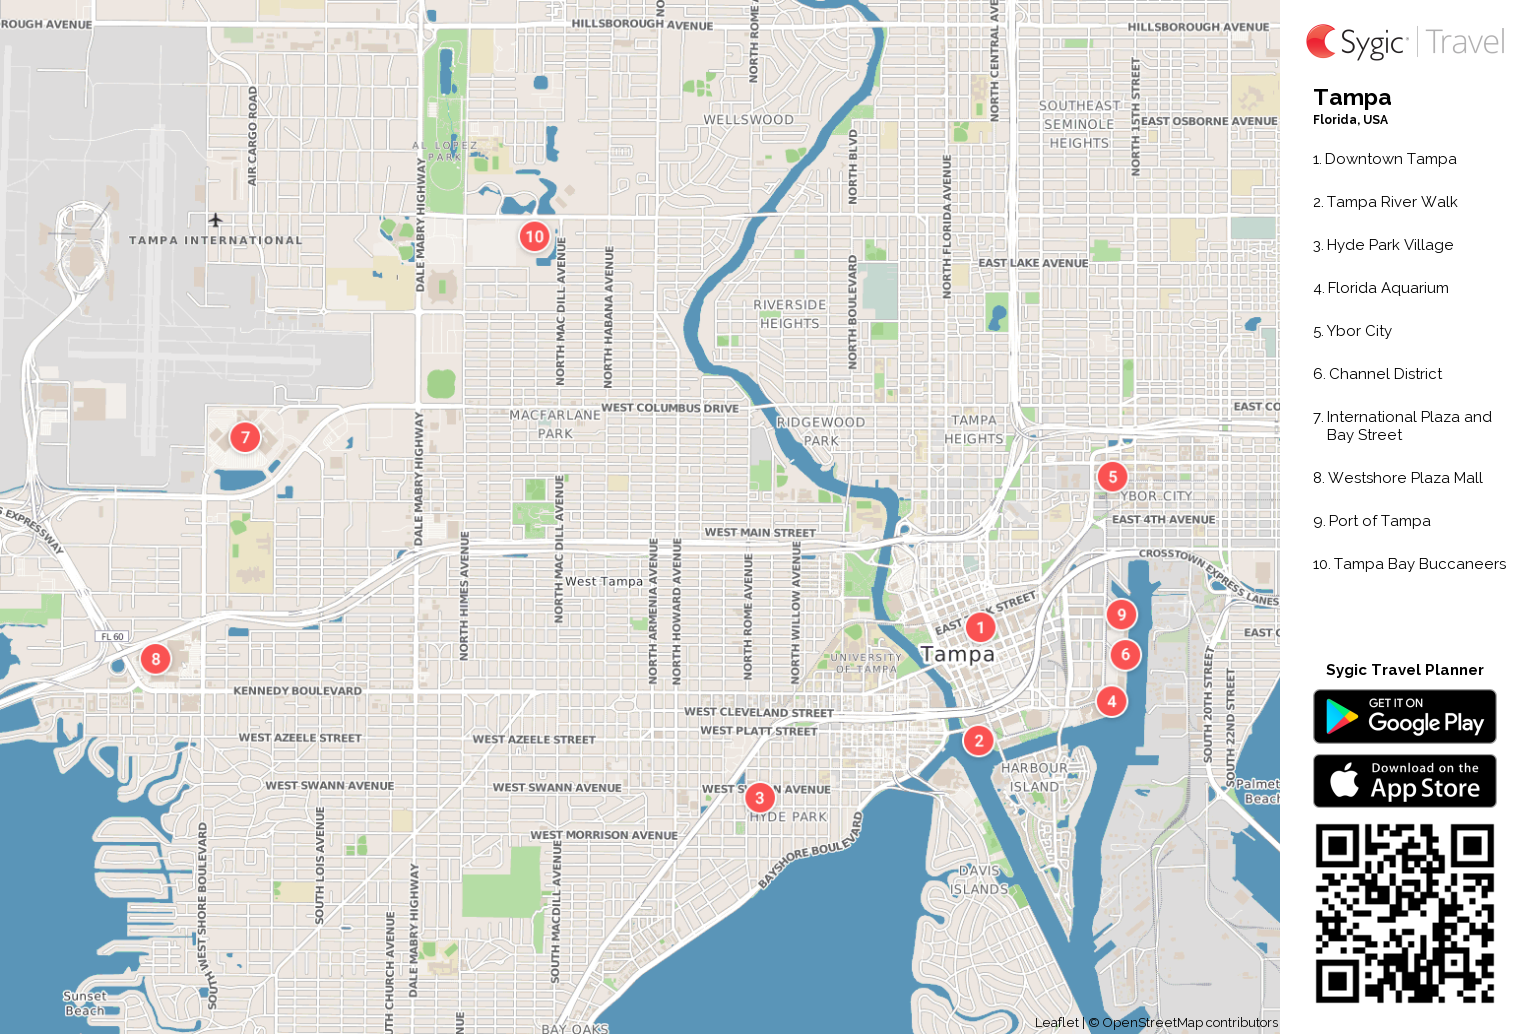 Tampa Printable Tourist Map Sygic Travel